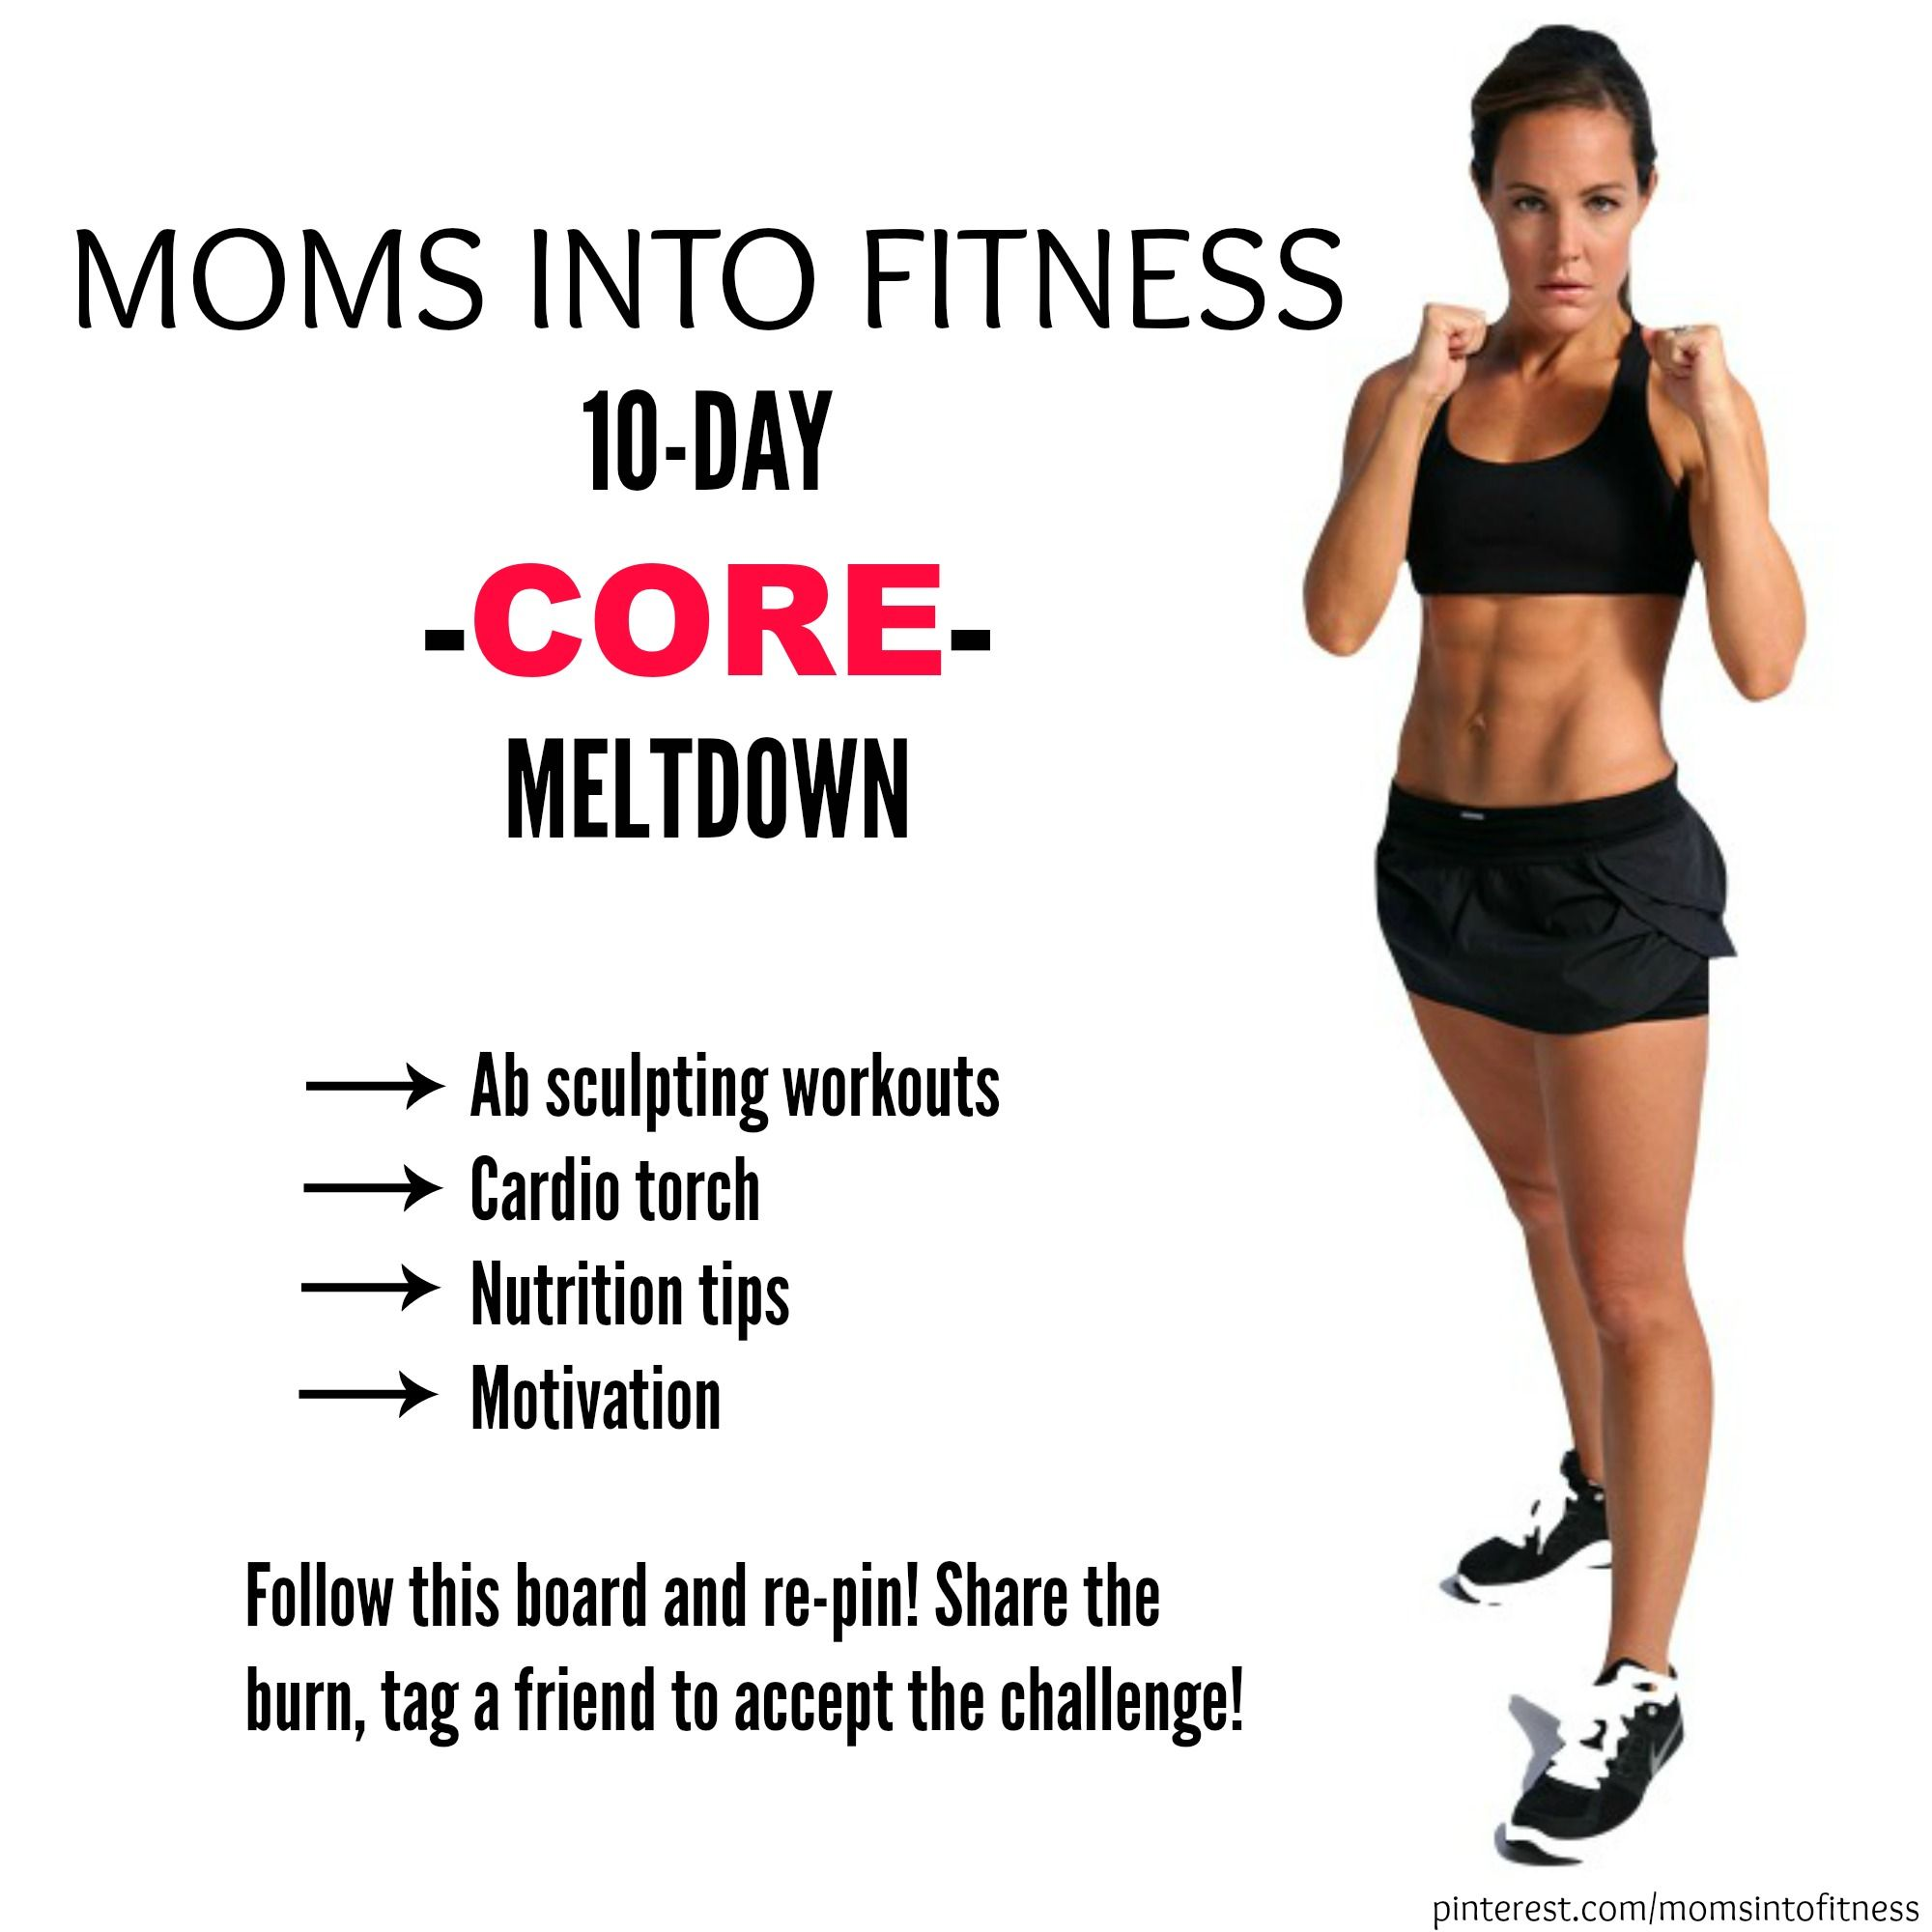 FREE 10 Day Challenge to melt your CORE! Take your measurements and a before pic before the challenge starts! Let me know if you'll join me, re-pin and comment below. Follow the board to get your daily workout. Be sure to tag a friend to do the challenge with you and keep each other accountable! #momsintofitness #MIFChallenge #core #abs #flatbelly  #momsintofitnessvideos #fitmom #athomeworkouts #fitness #getfit